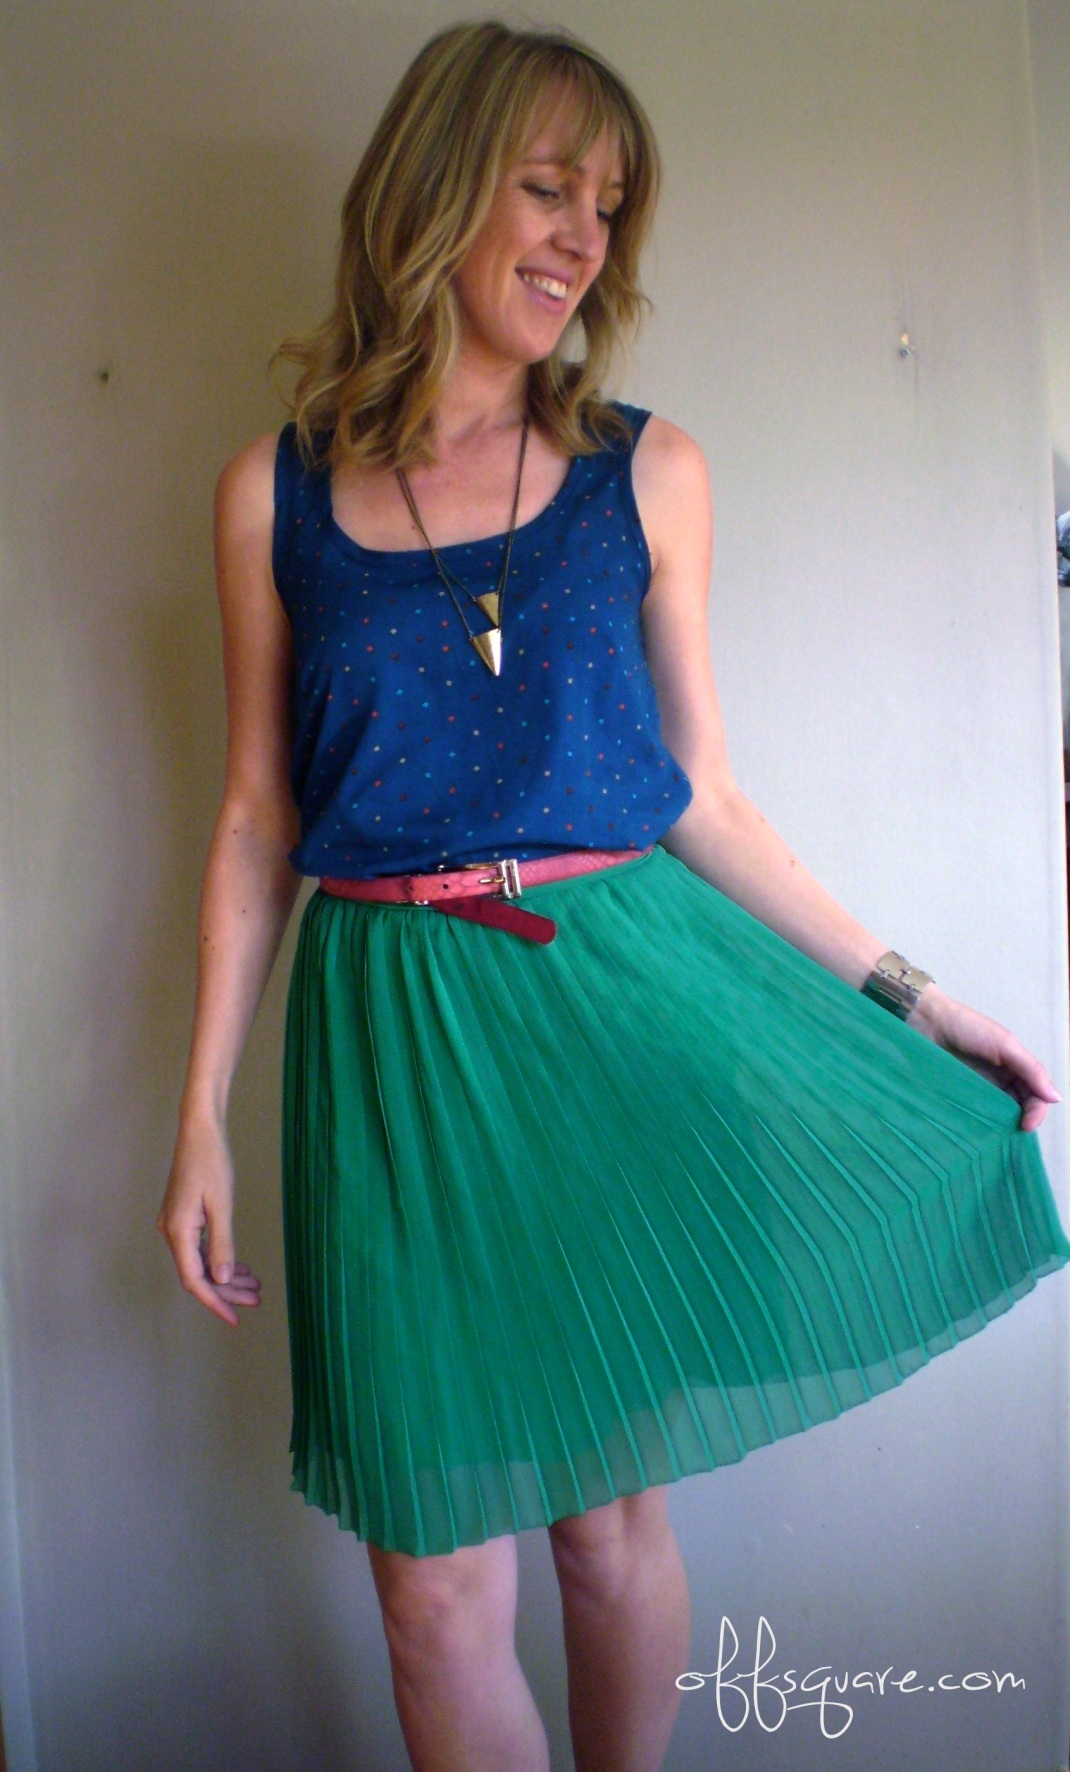 Refashion a pleated dress into a skirt | Offsquare.com